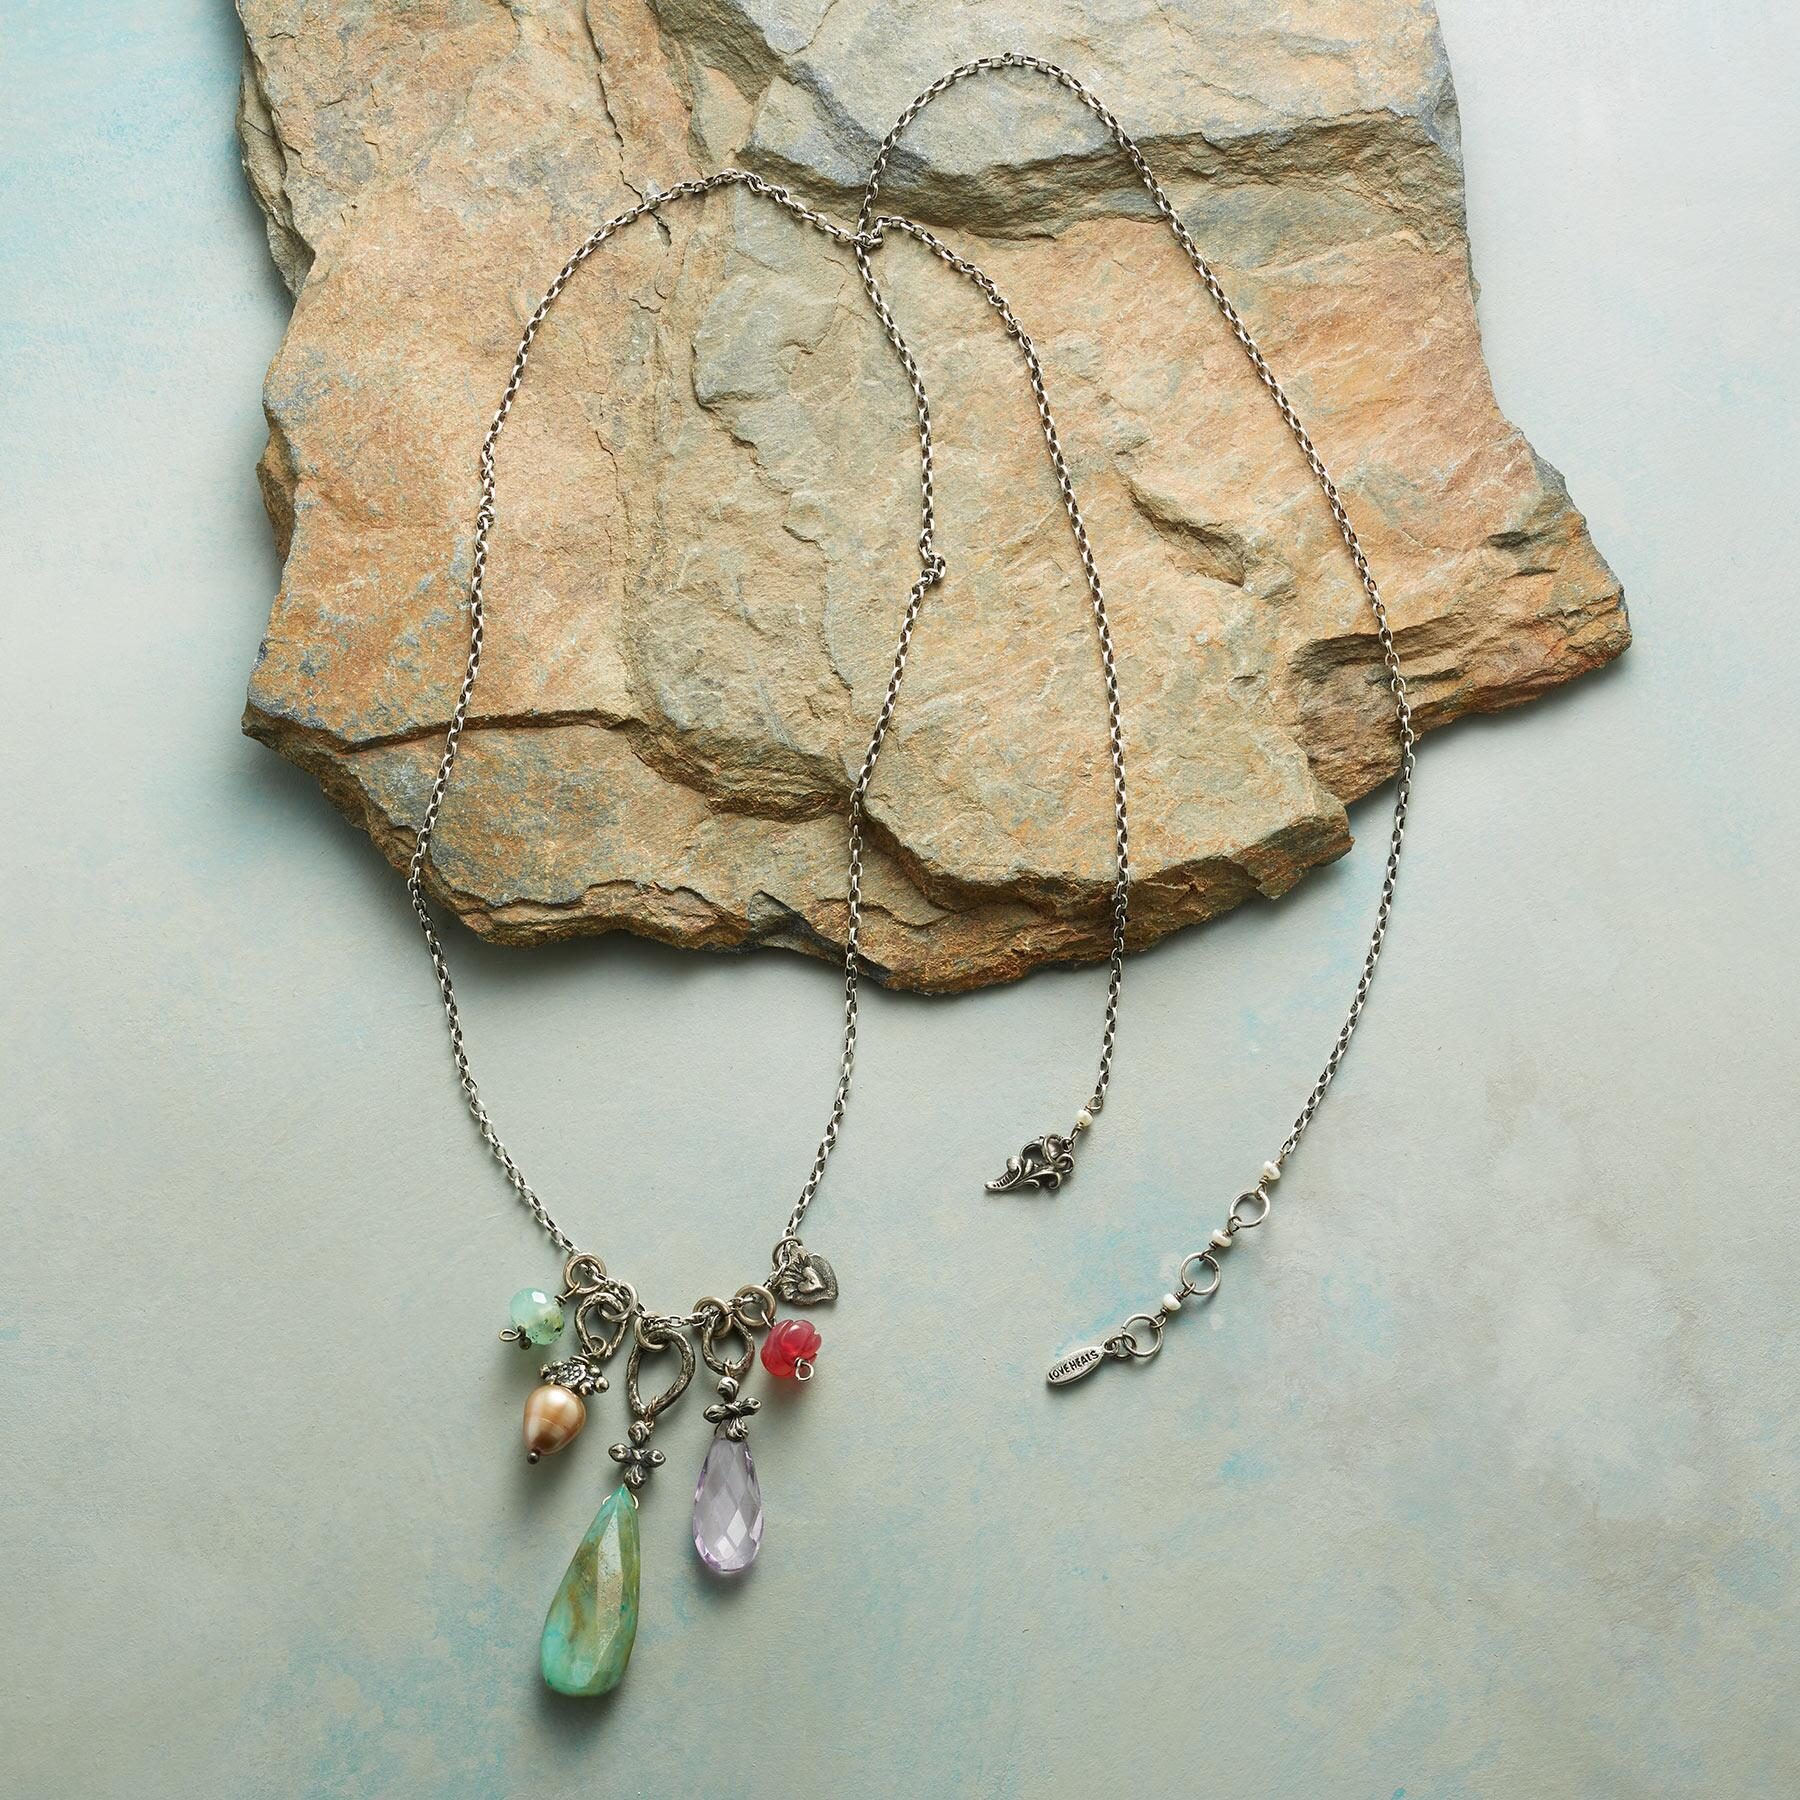 CREATIVE CONFLUENCE NECKLACE: View 2